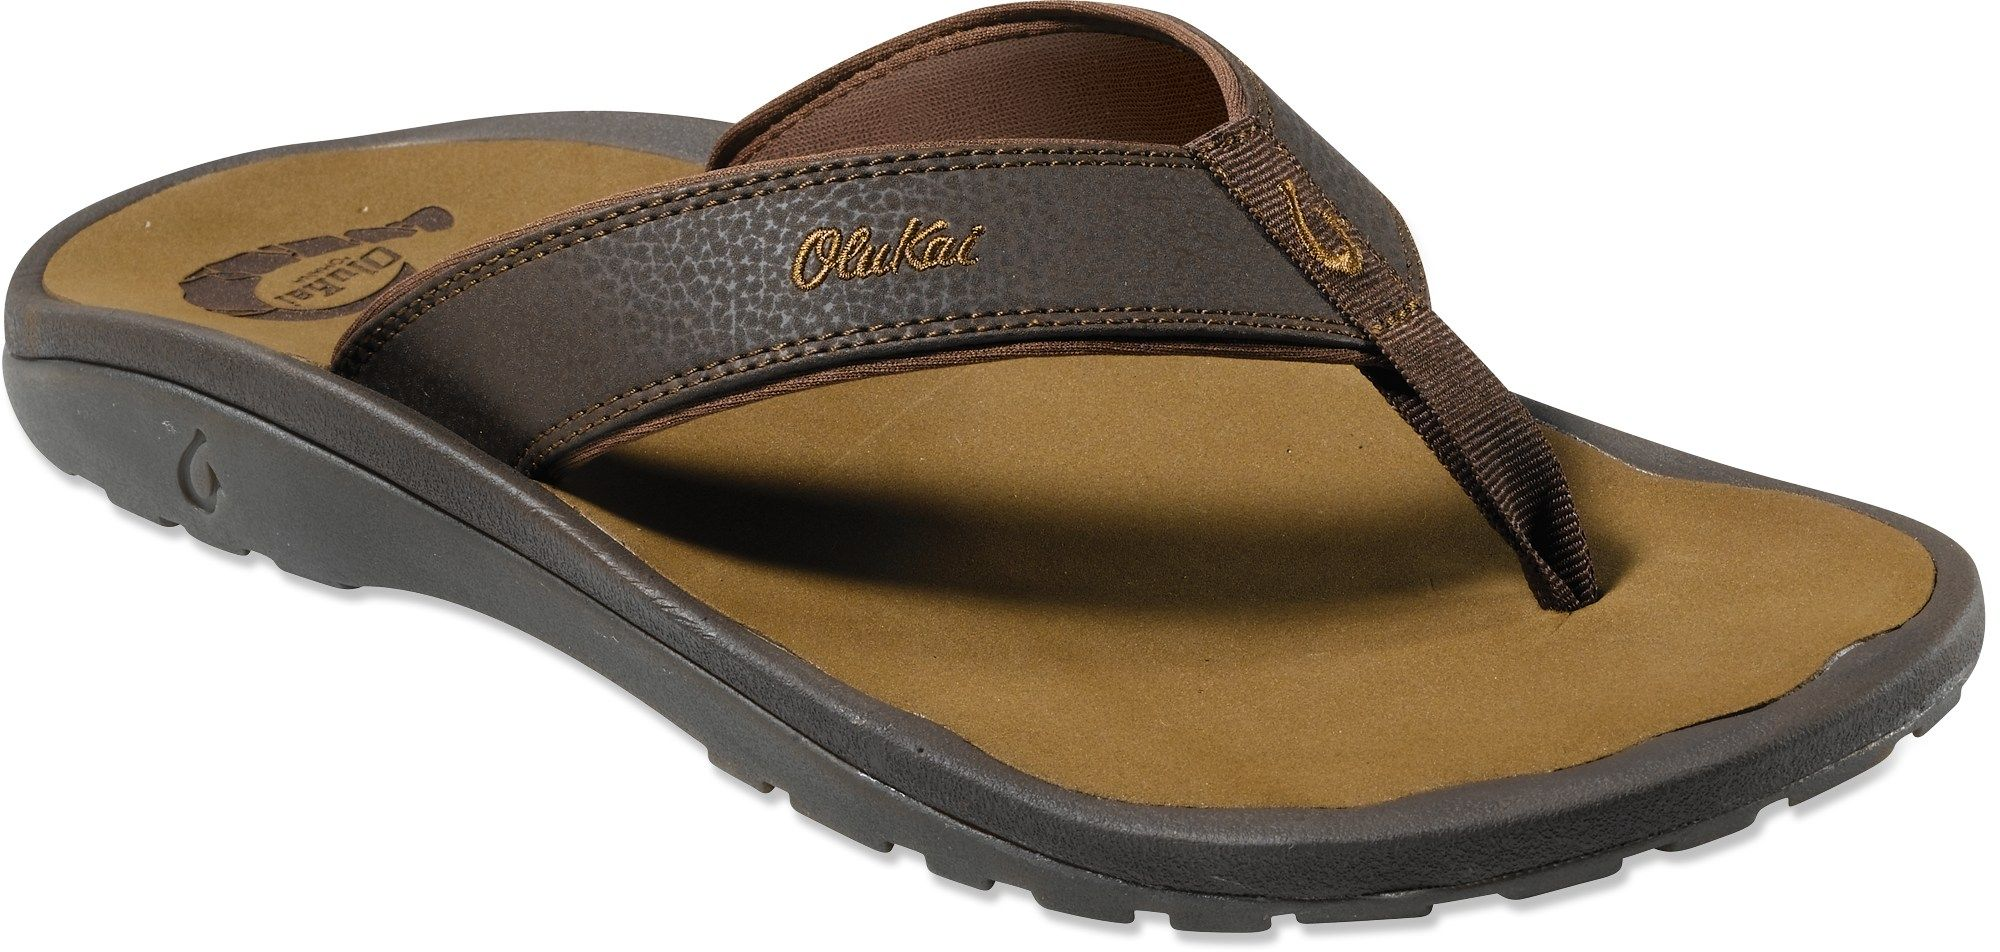 matching g reef with comfortable straps eva comforter classier most molded top fanning than little a soft the leather sandals look typical mens flops midsole gds for men flip and